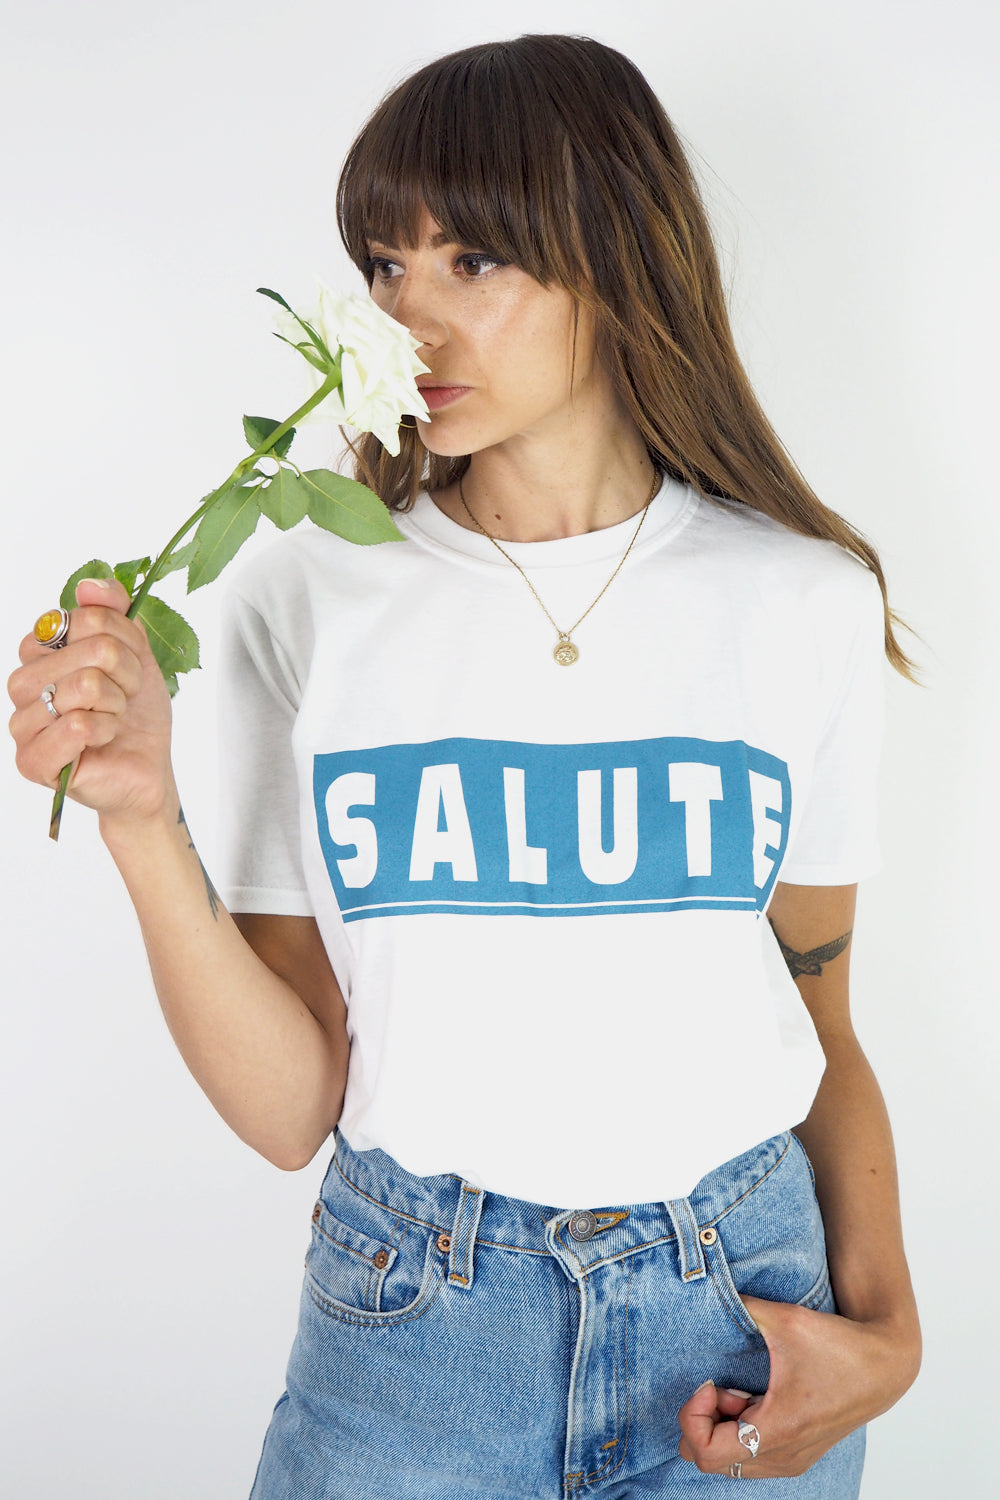 Salute retro slogan t-shirt